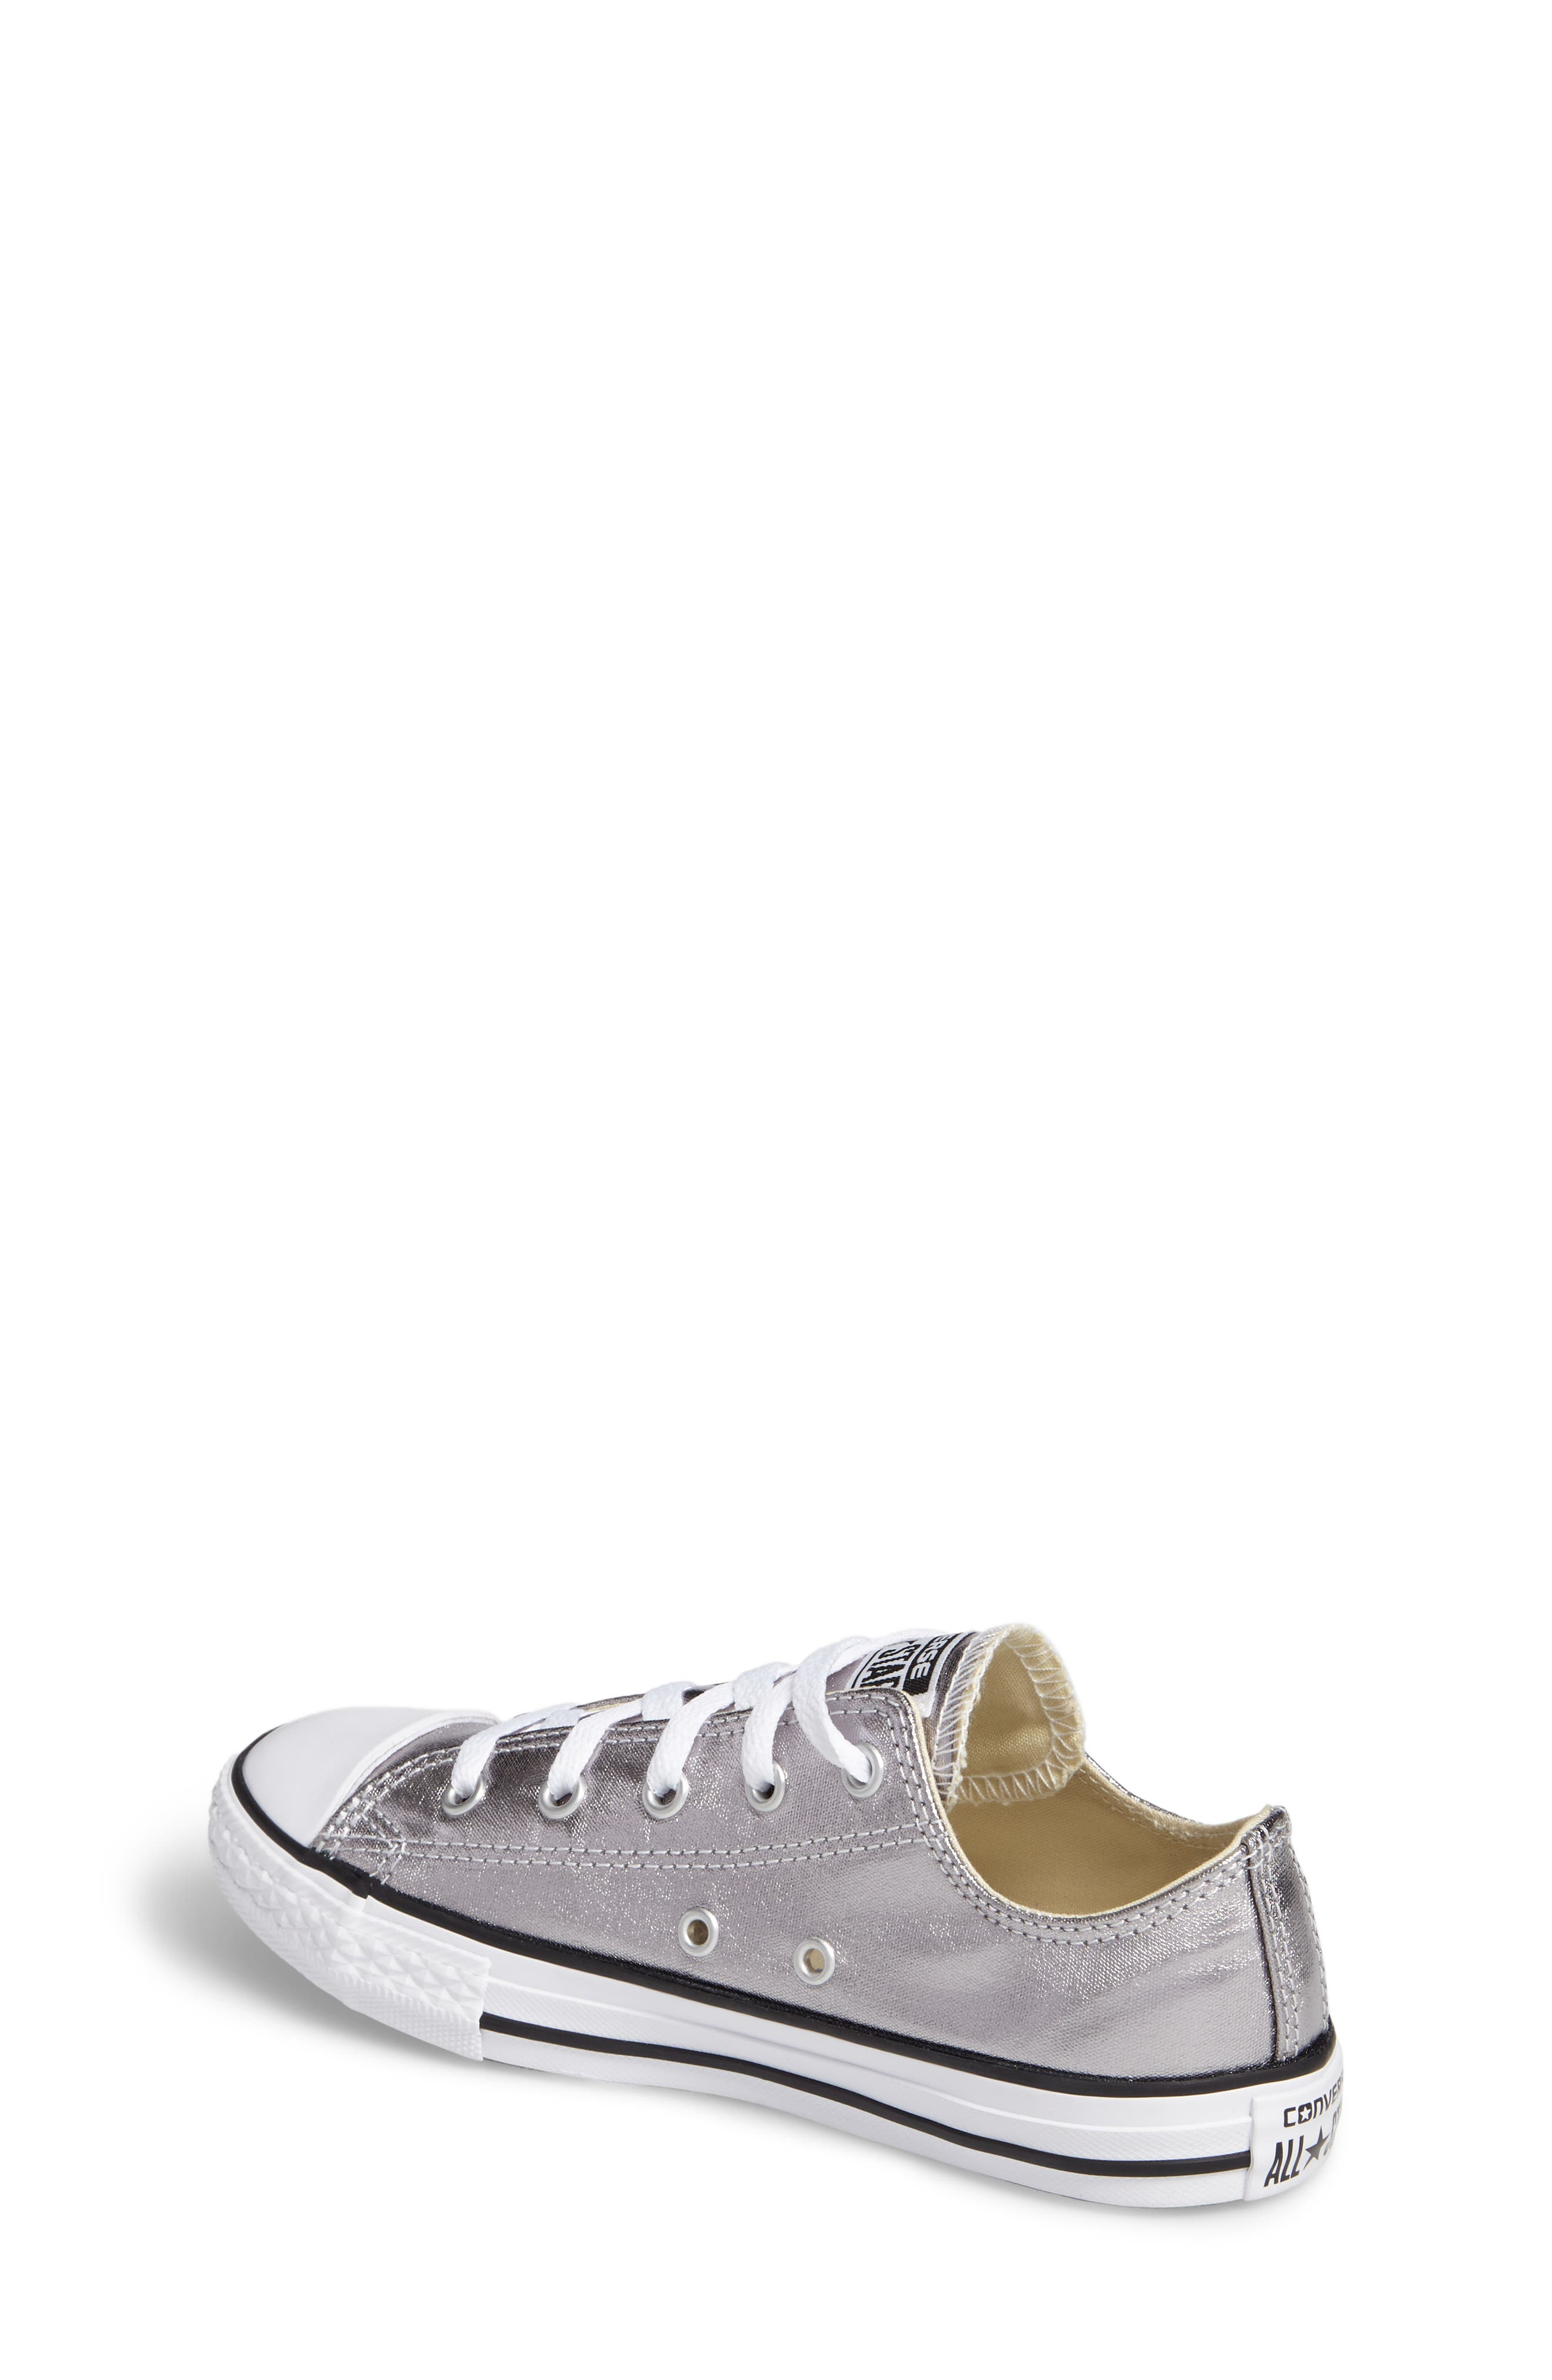 Chuck Taylor<sup>®</sup> All Star<sup>®</sup> Metallic Sneaker,                             Alternate thumbnail 2, color,                             040